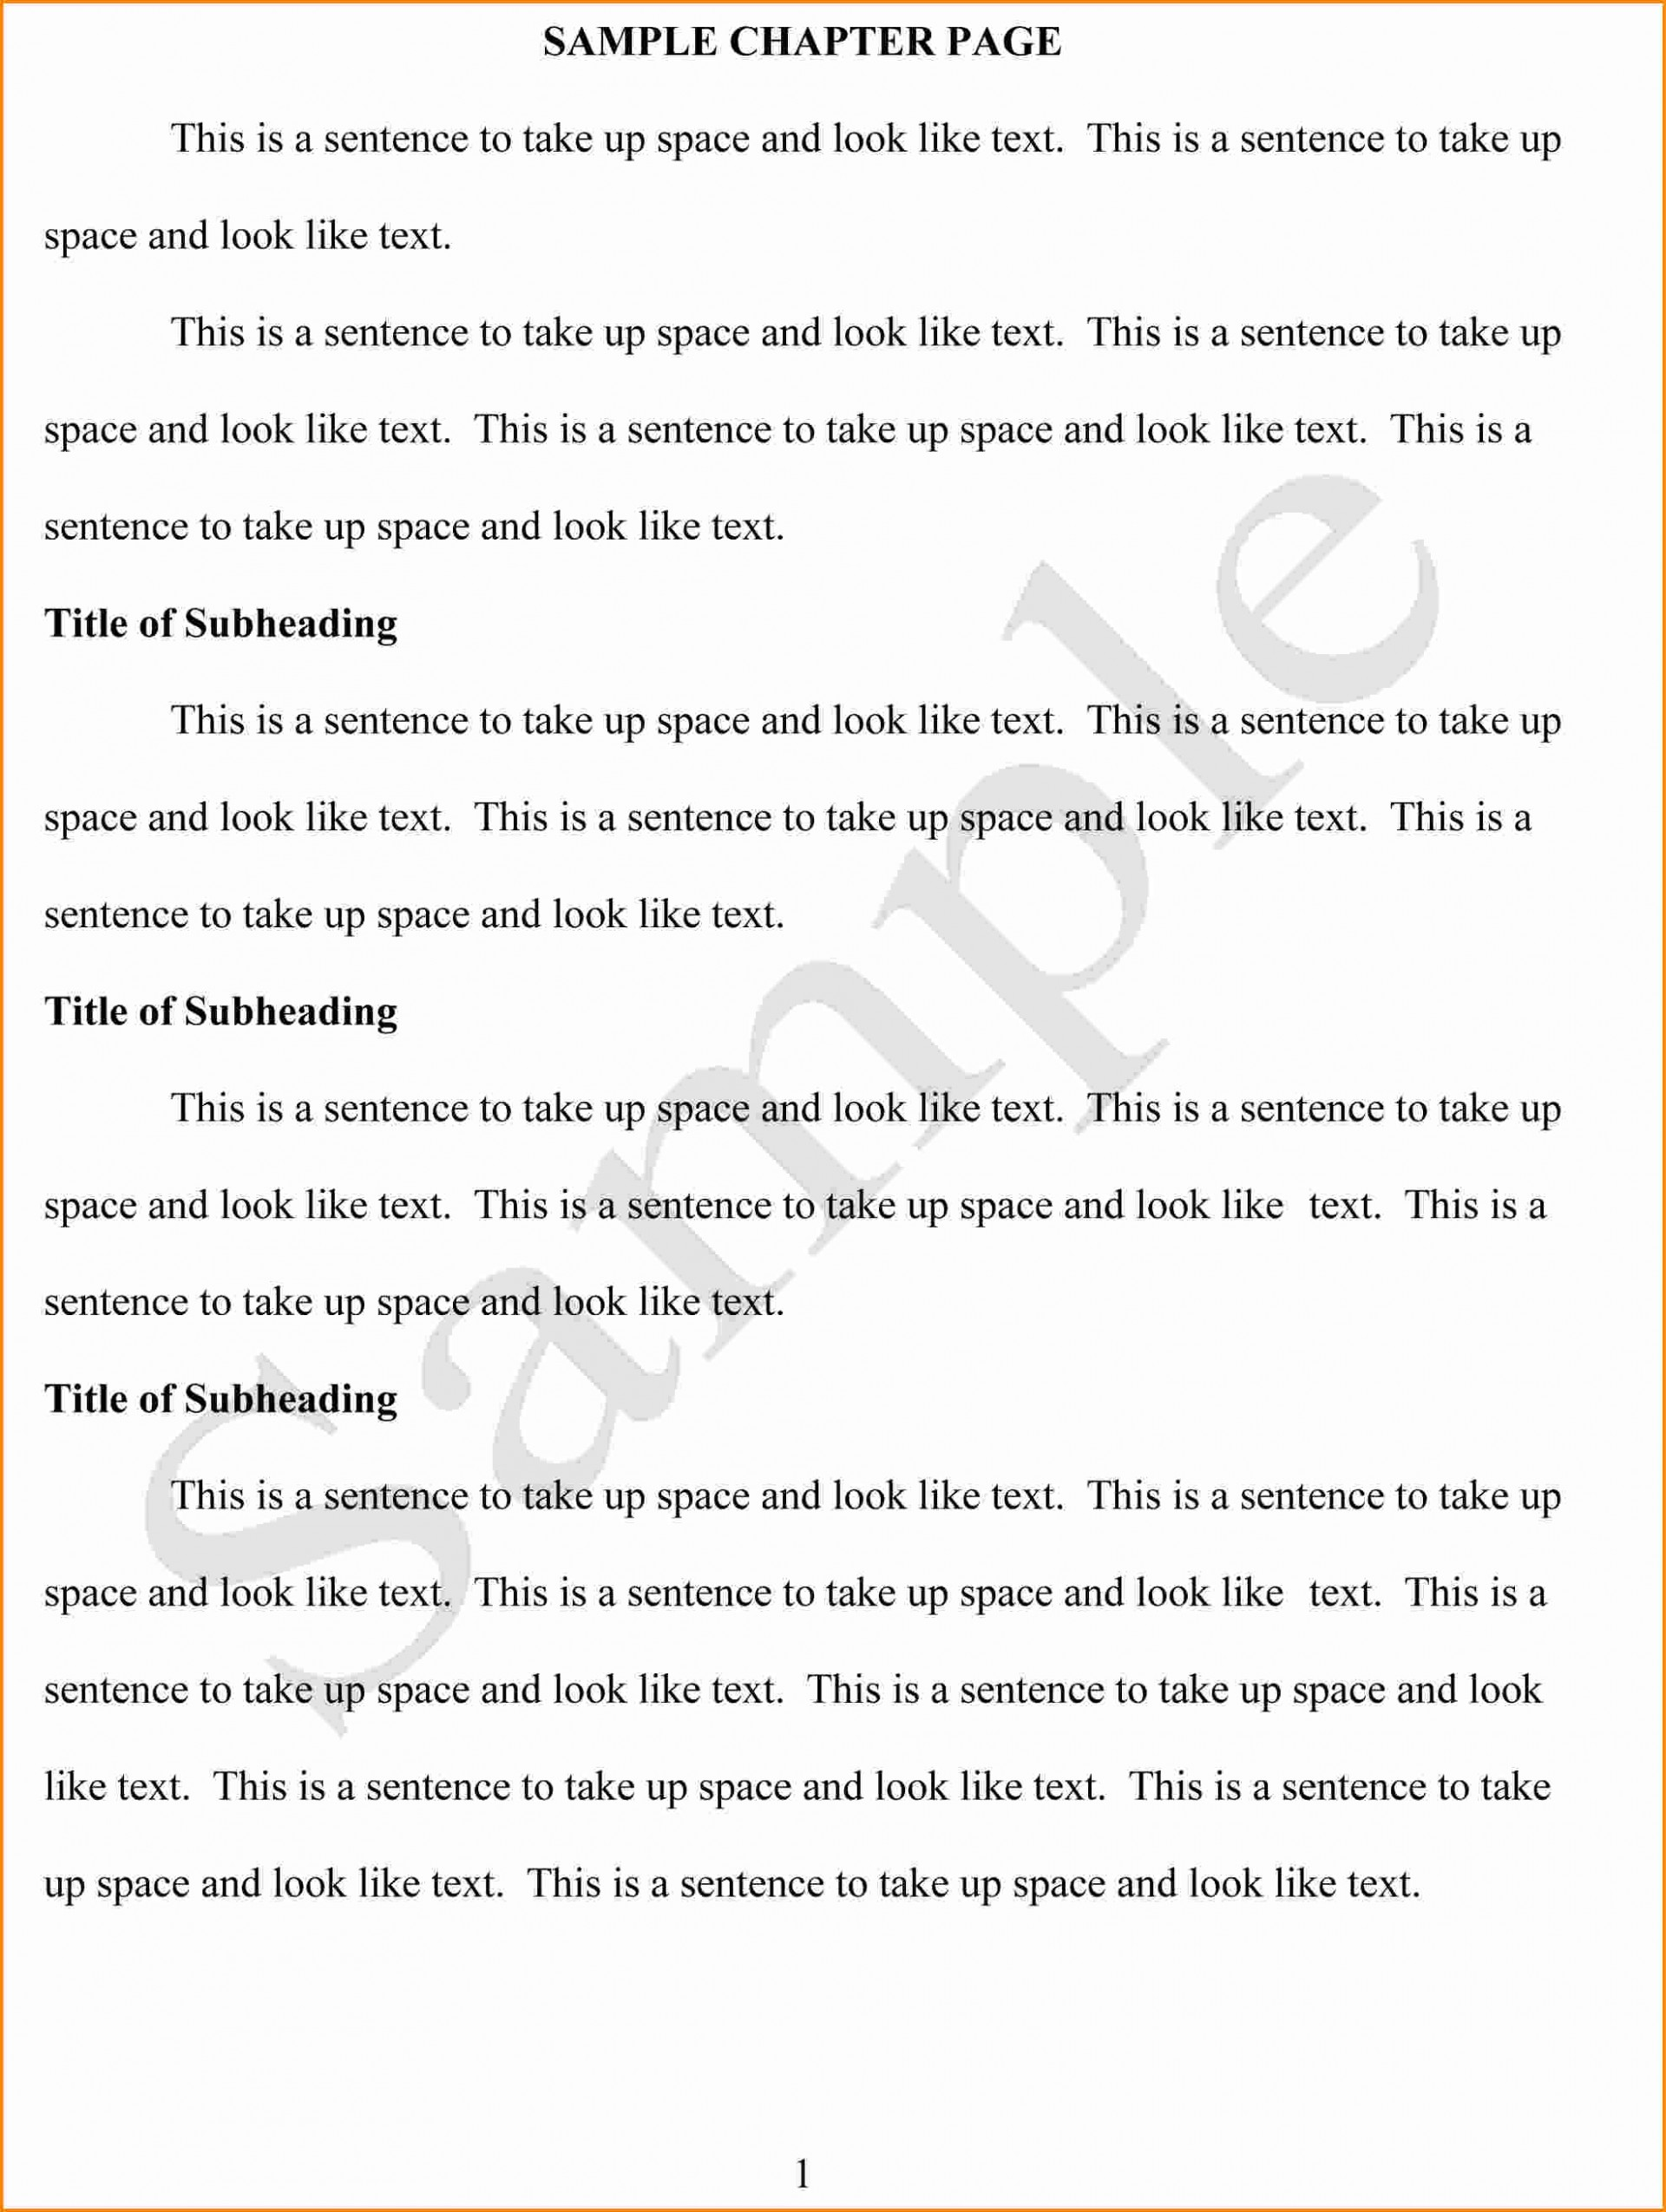 006 Essay Example Whats An Expository Thesis Statement Examples For Essays Psychology Phenomenal What Is 4th Grade Powerpoint Does Consist Of 1920